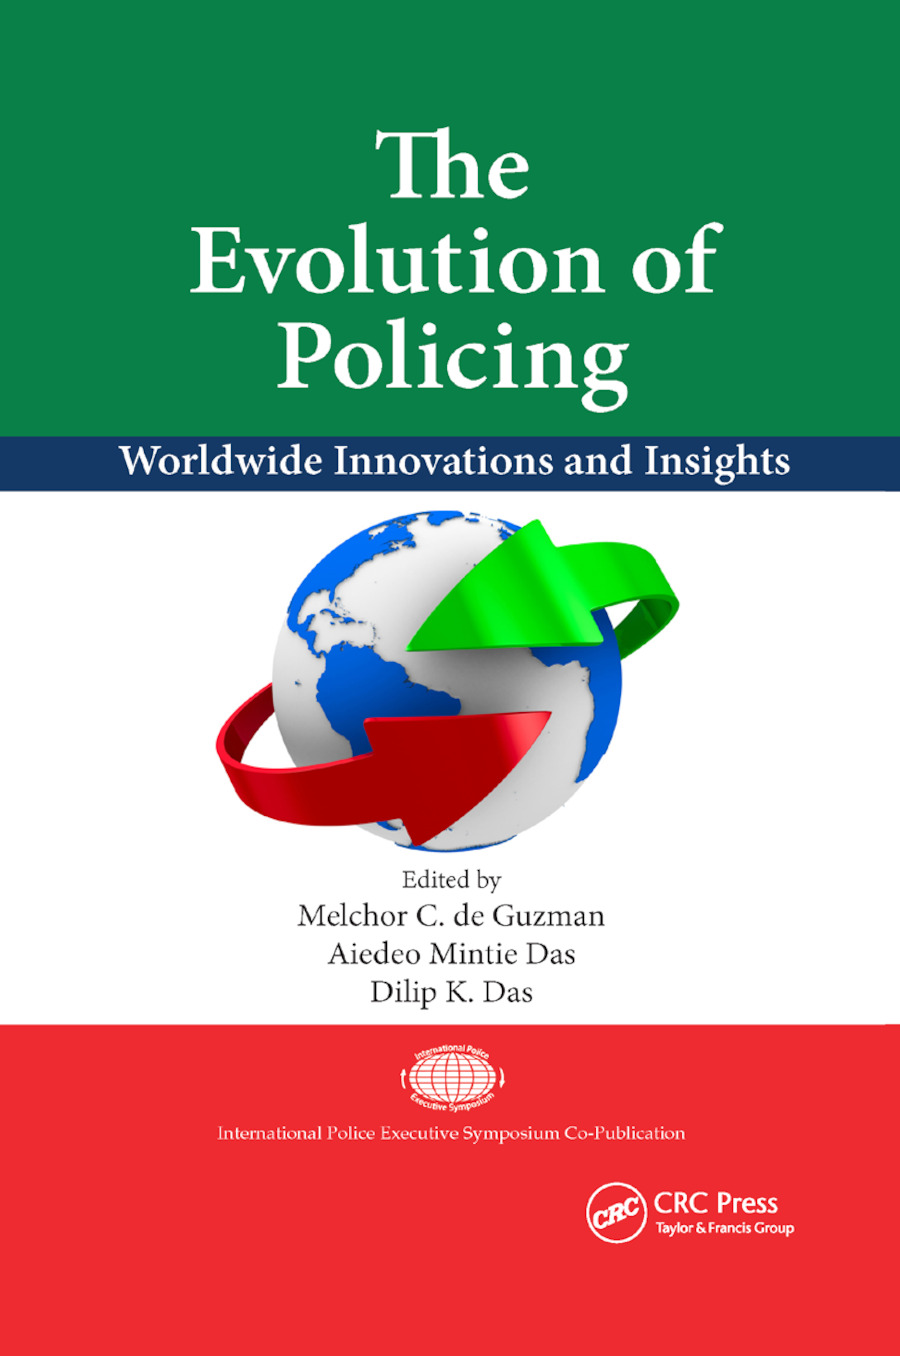 The Evolution of Policing: Worldwide Innovations and Insights book cover